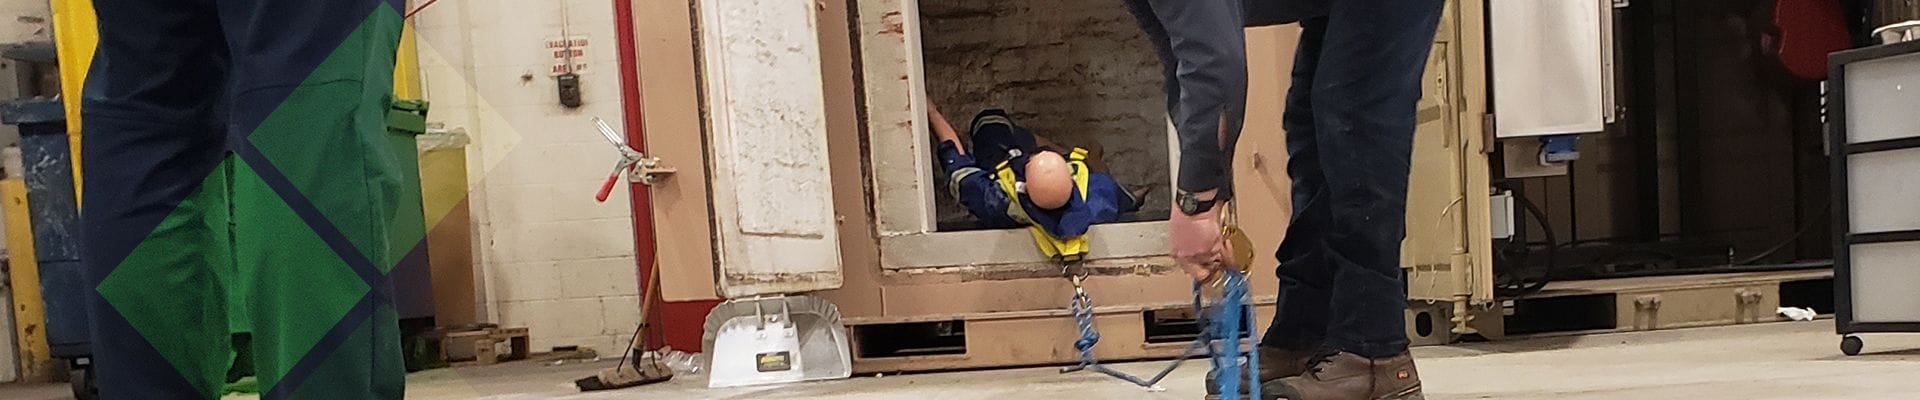 Confined Space Training - Rescue Level 3 Advanced IDHL